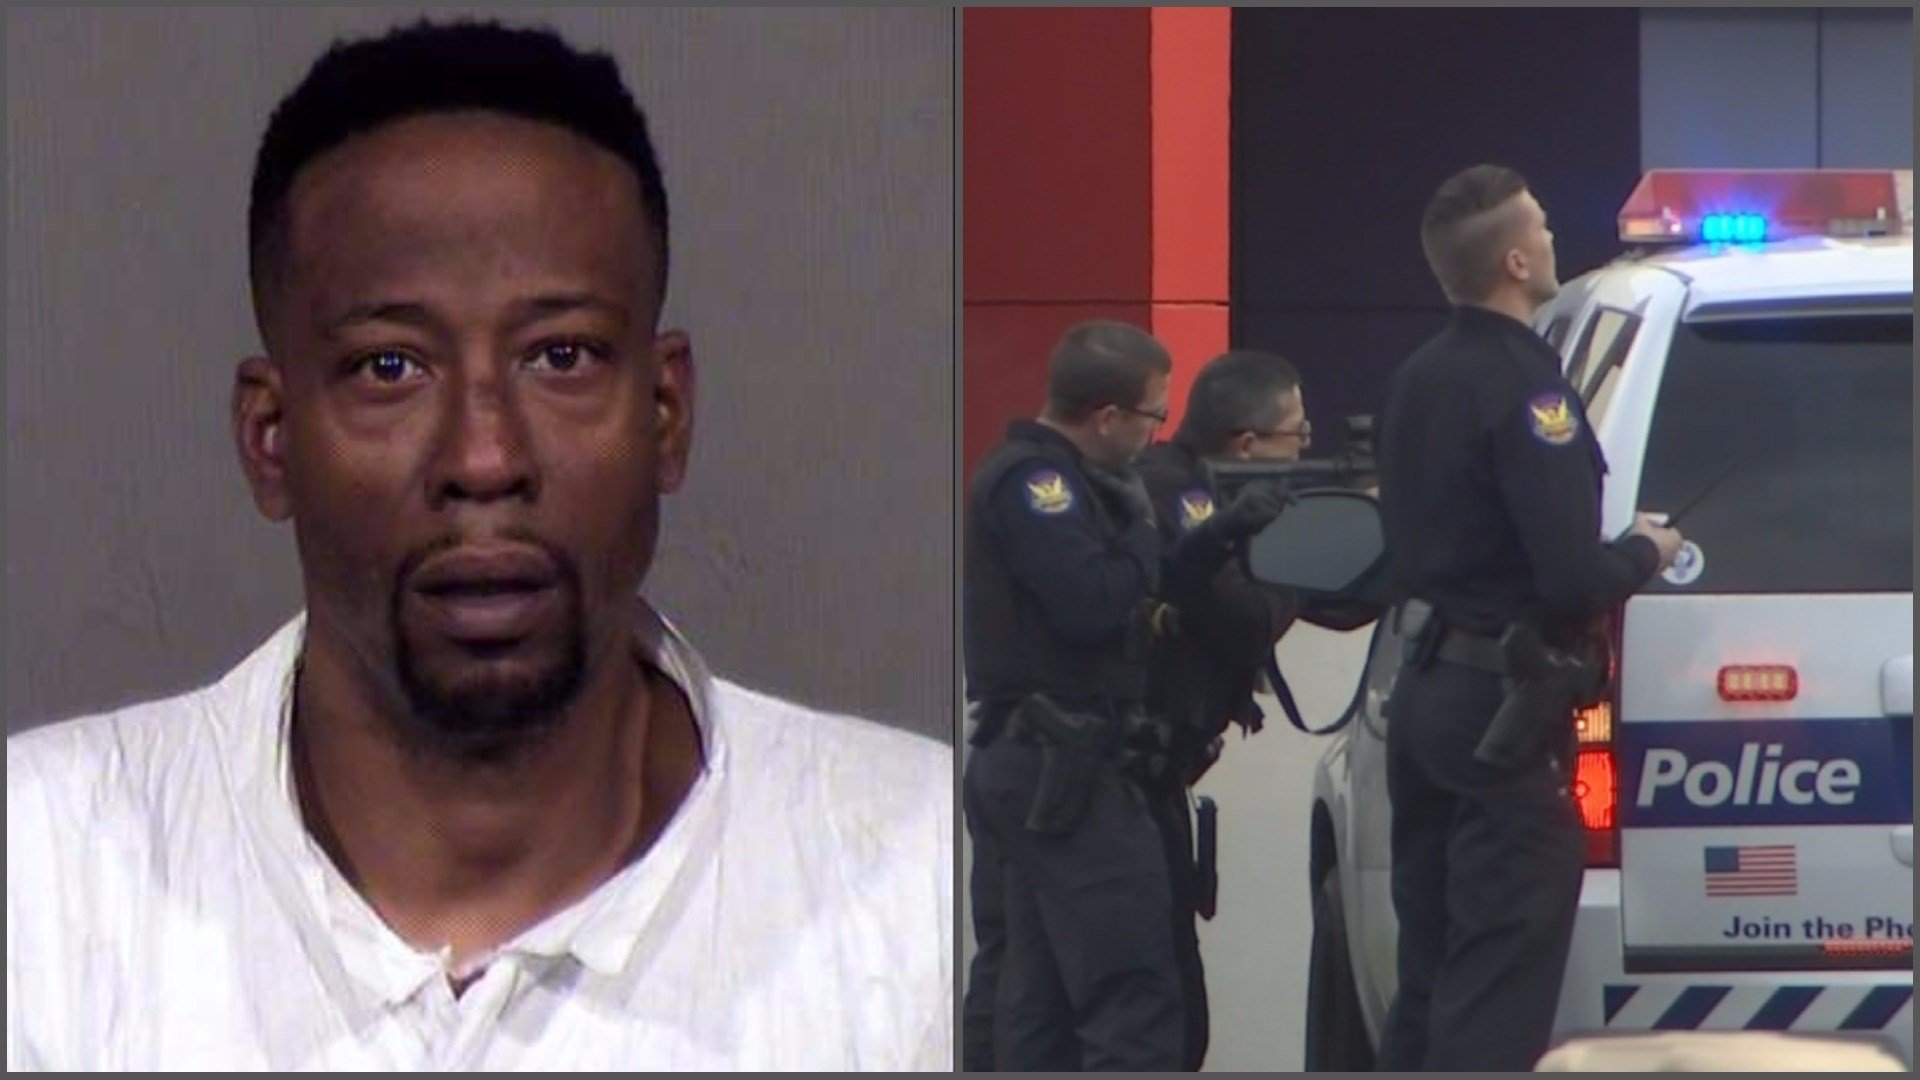 Police on Tuesday identified the suspect as Anthony Ross. (Source: Maricopa County Sheriff's Office and 3TV/CBS 5)